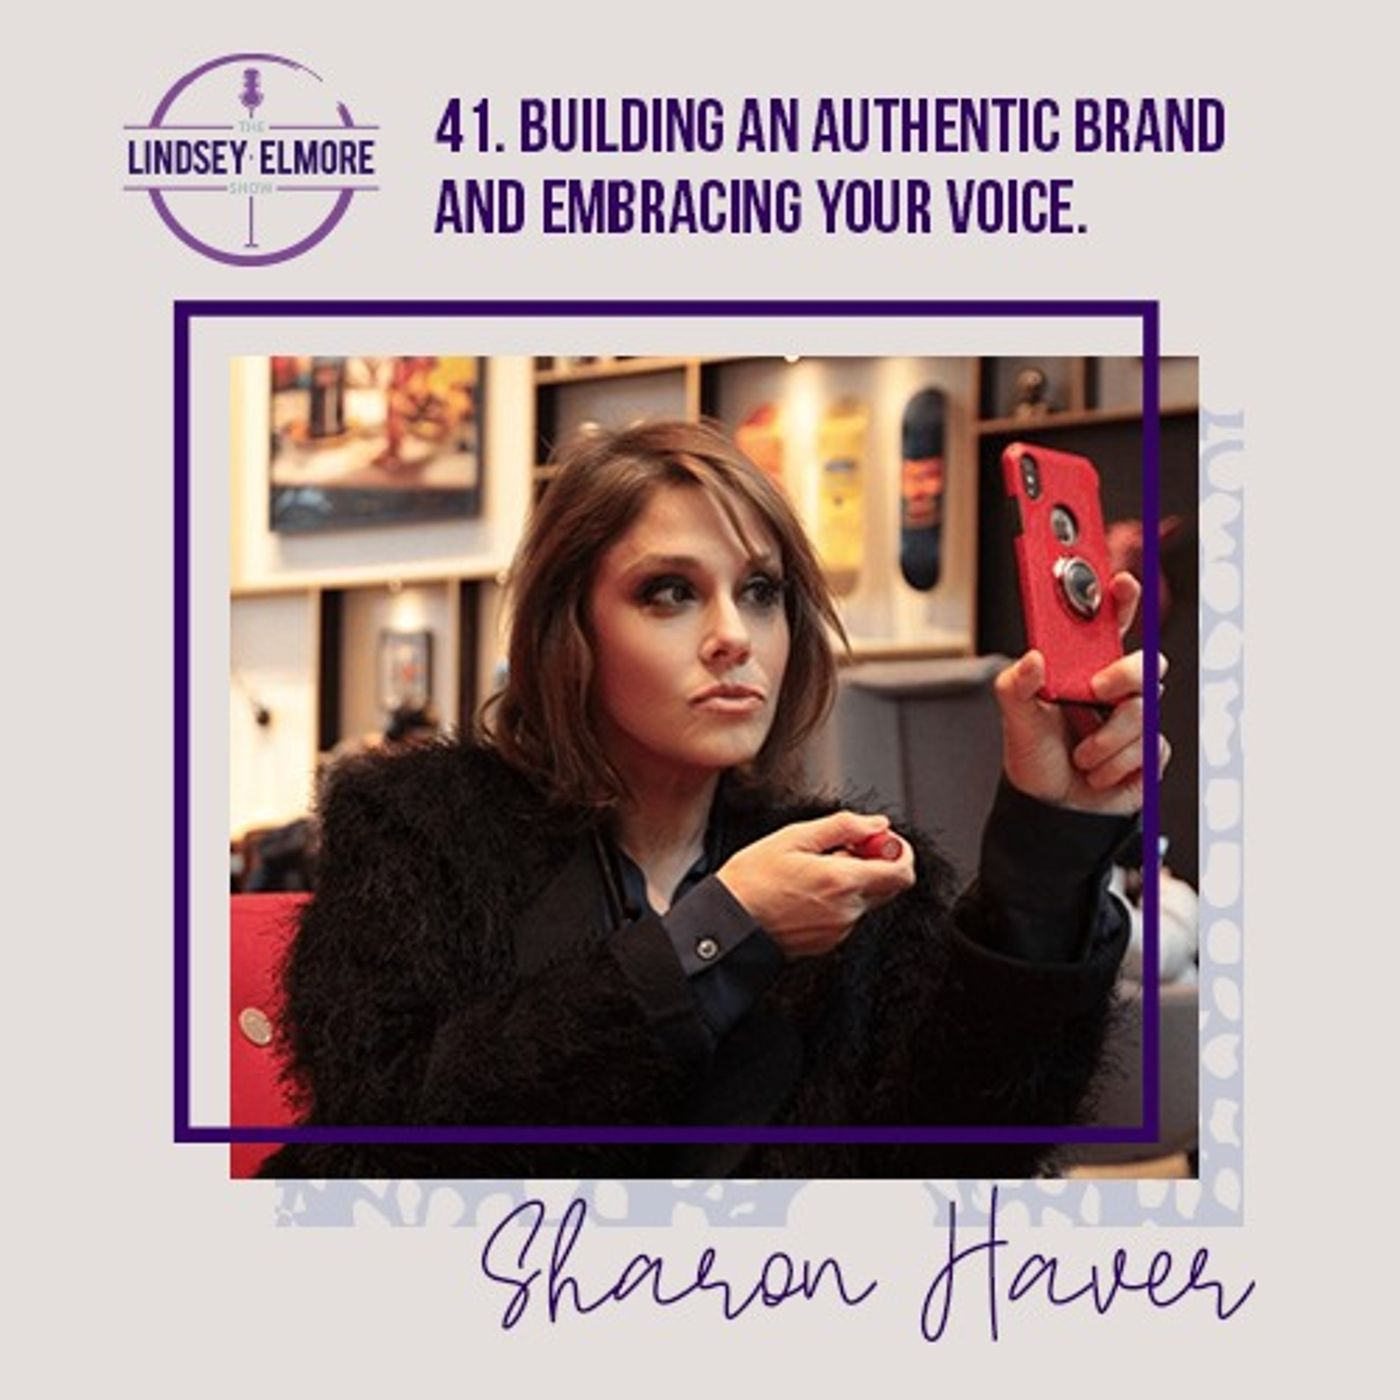 Building an authentic brand and embracing your voice. An interview with Sharon Haver.